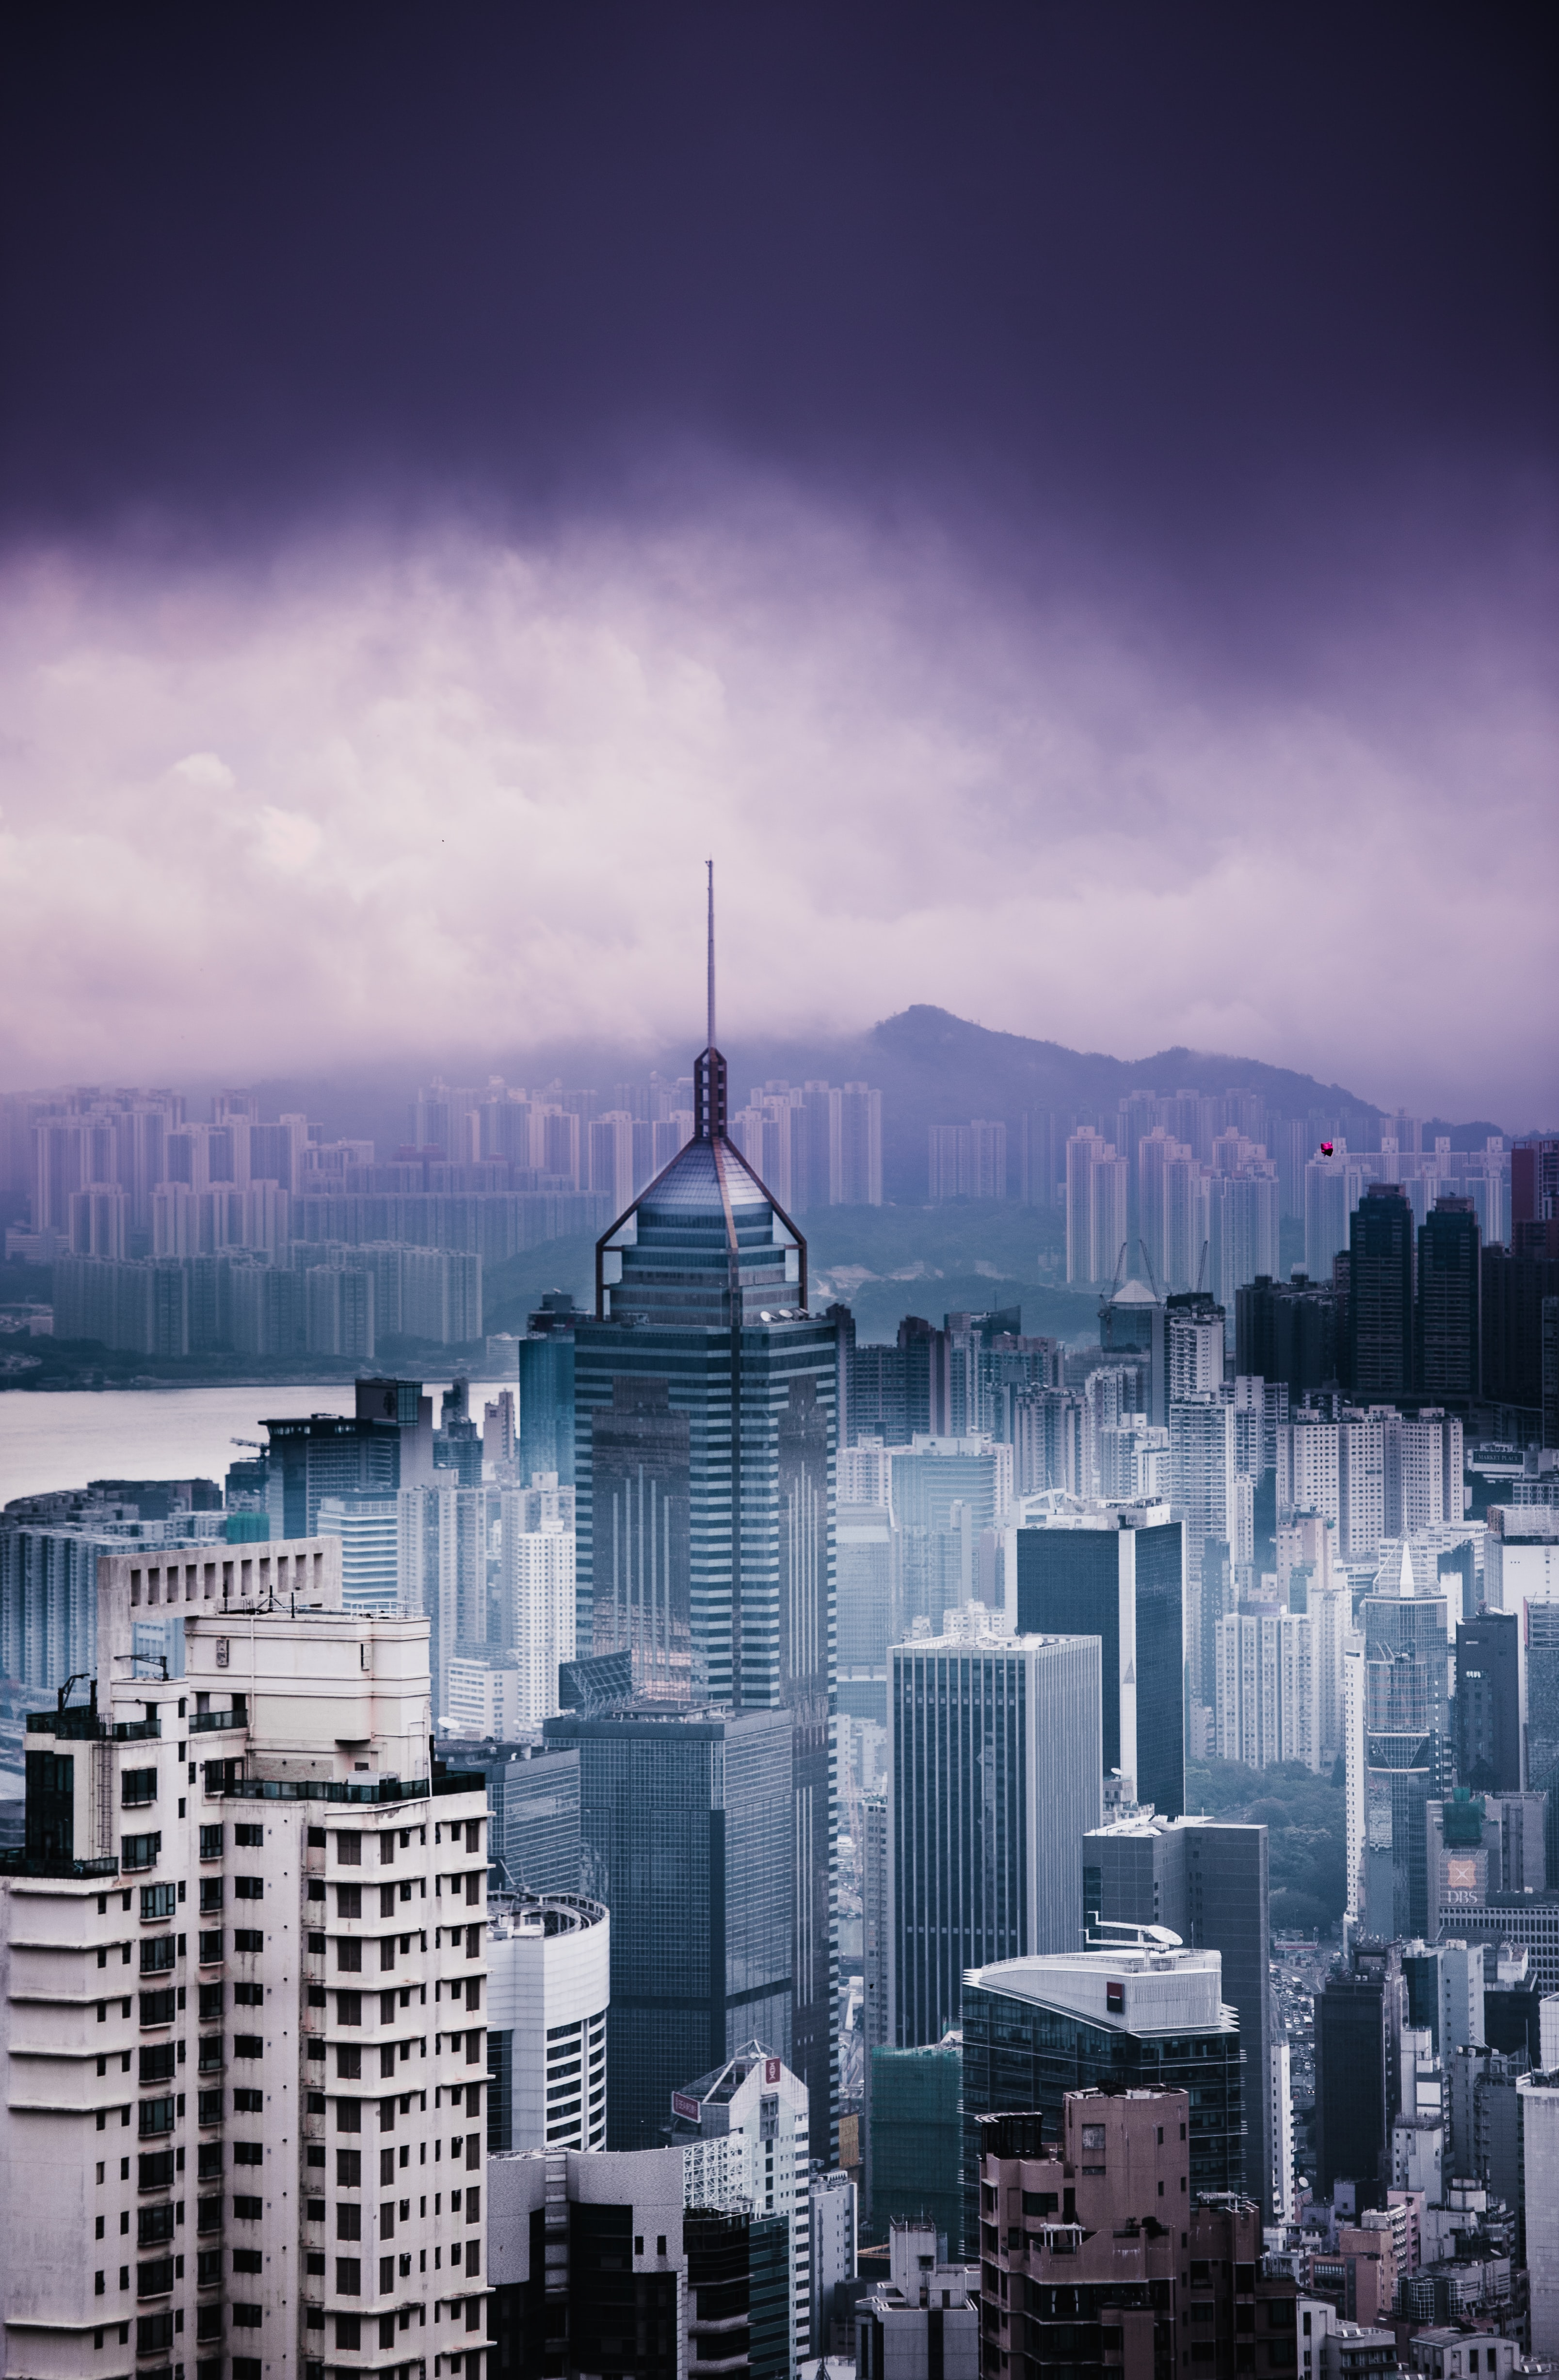 The skyline of Hong Kong under thick clouds